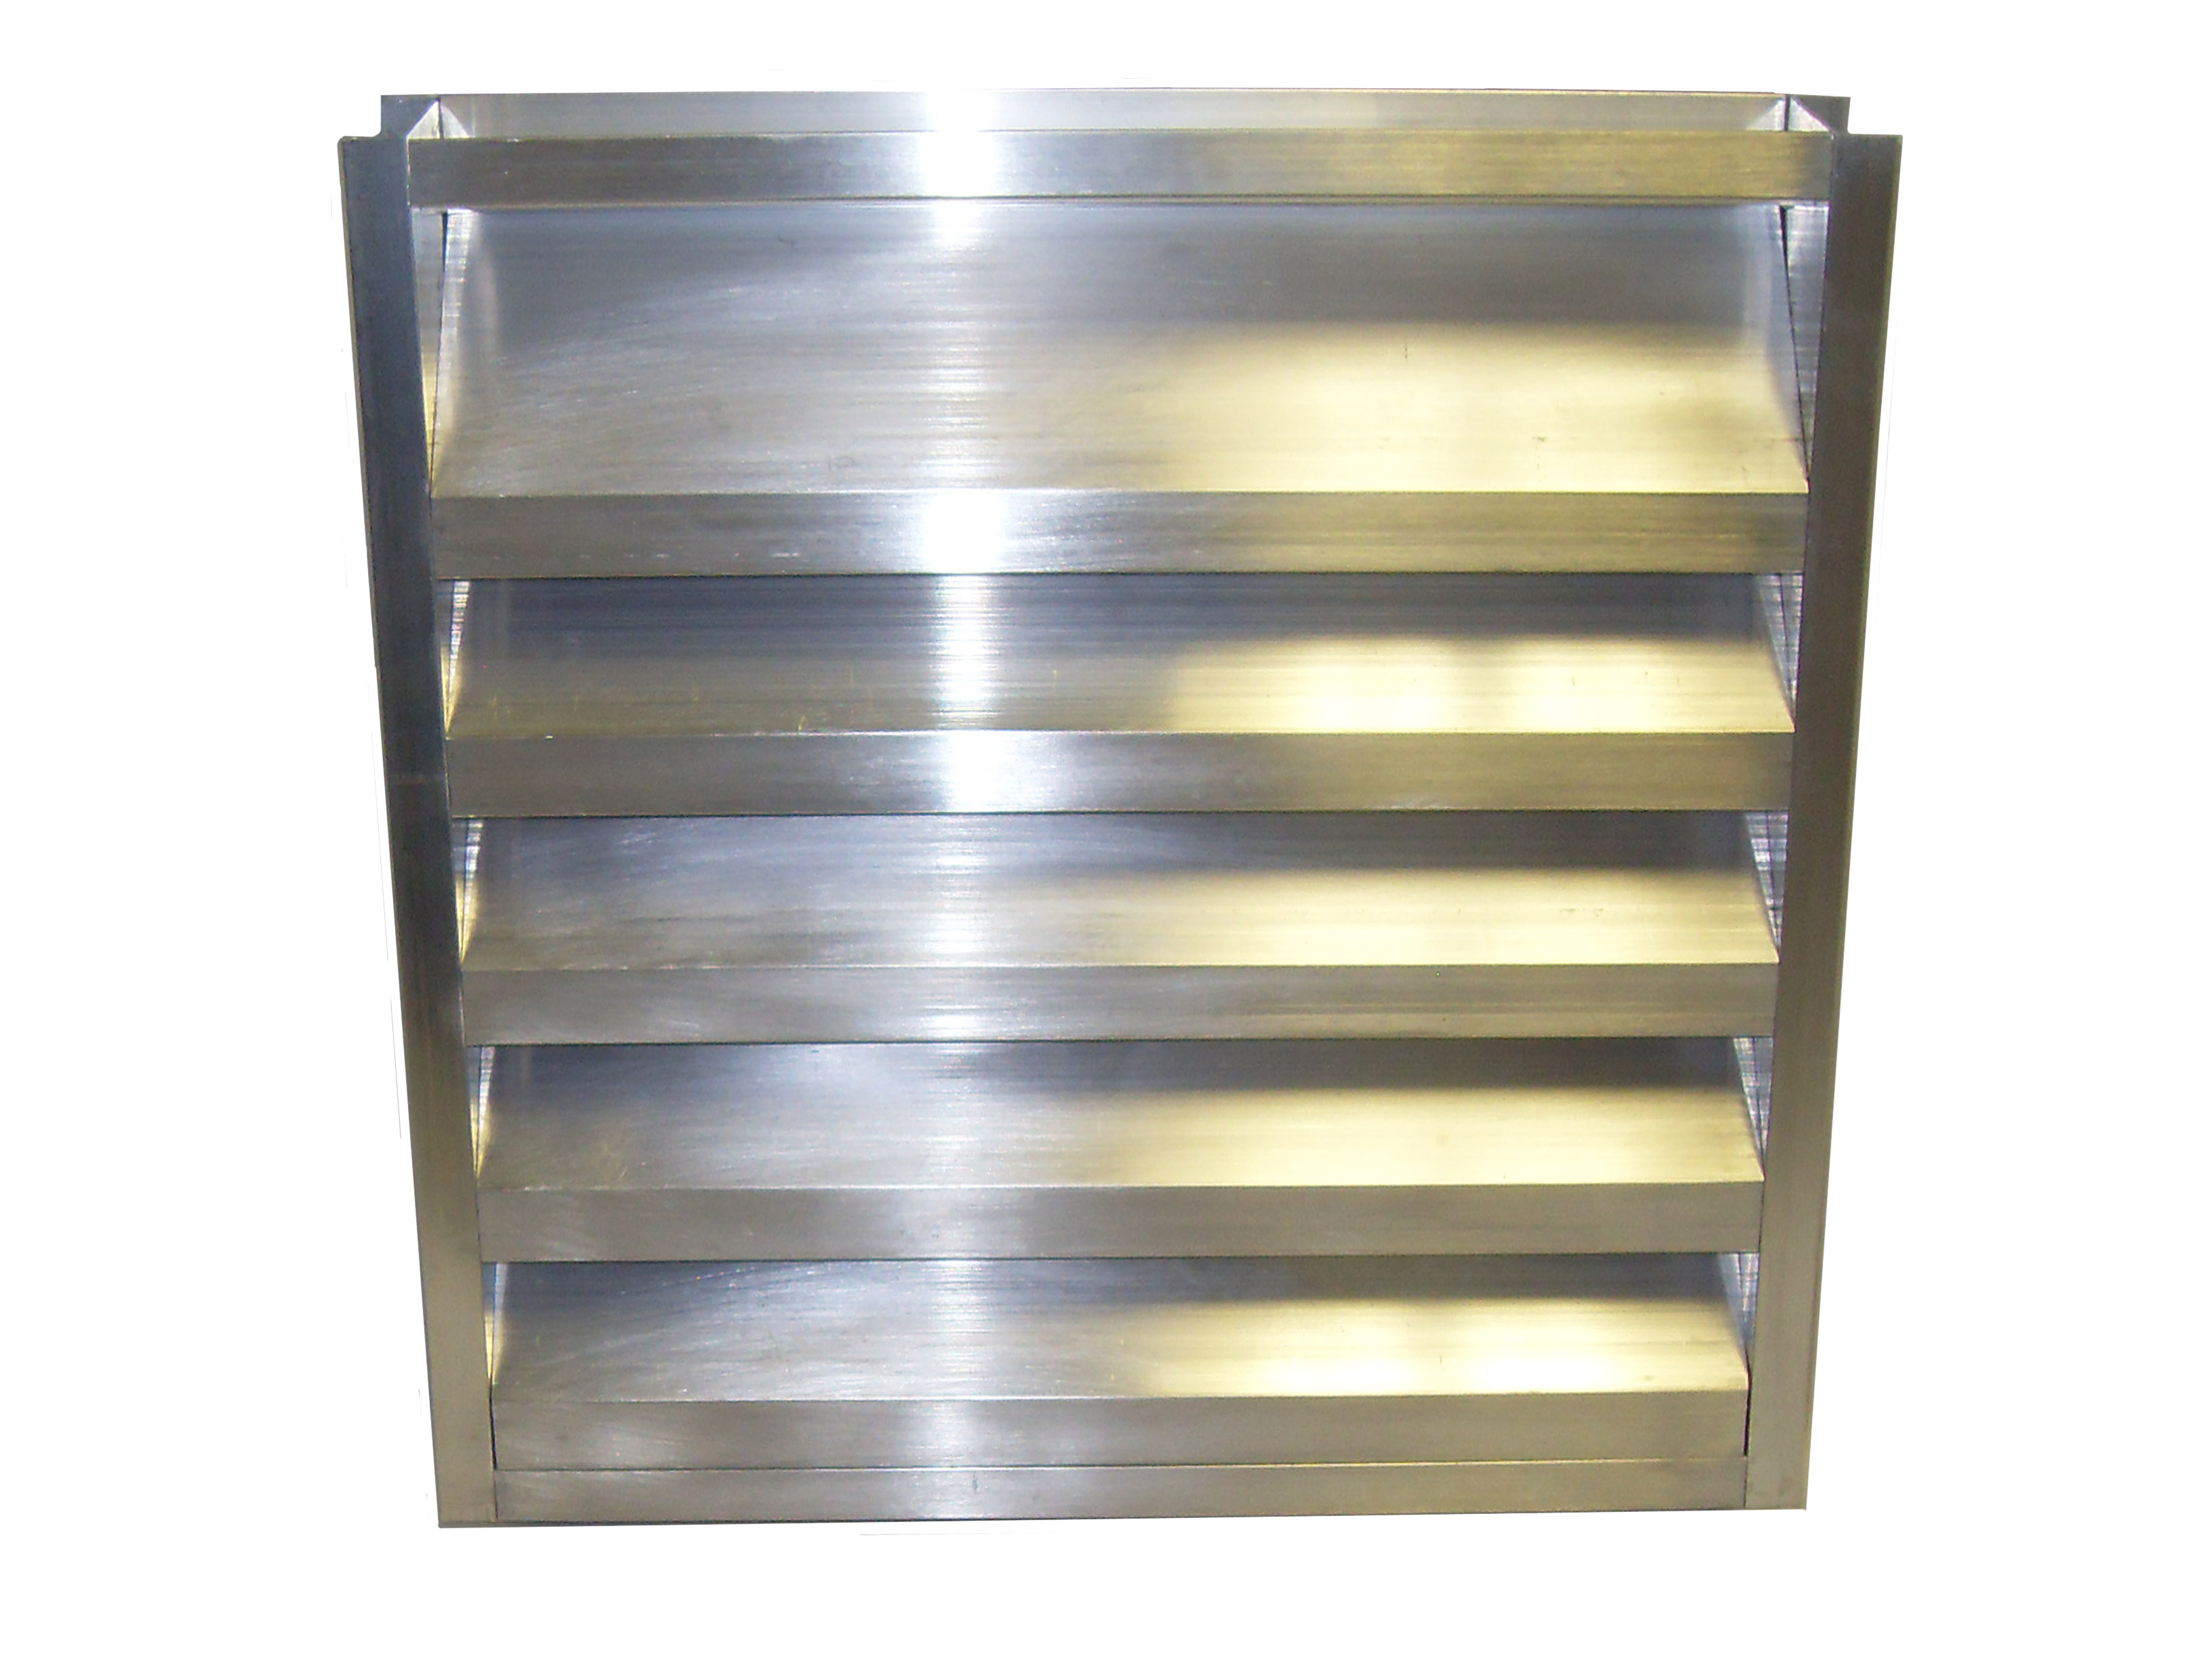 2 Inch Channel Frame Louver Model 2 Srcf Lloyd Industries